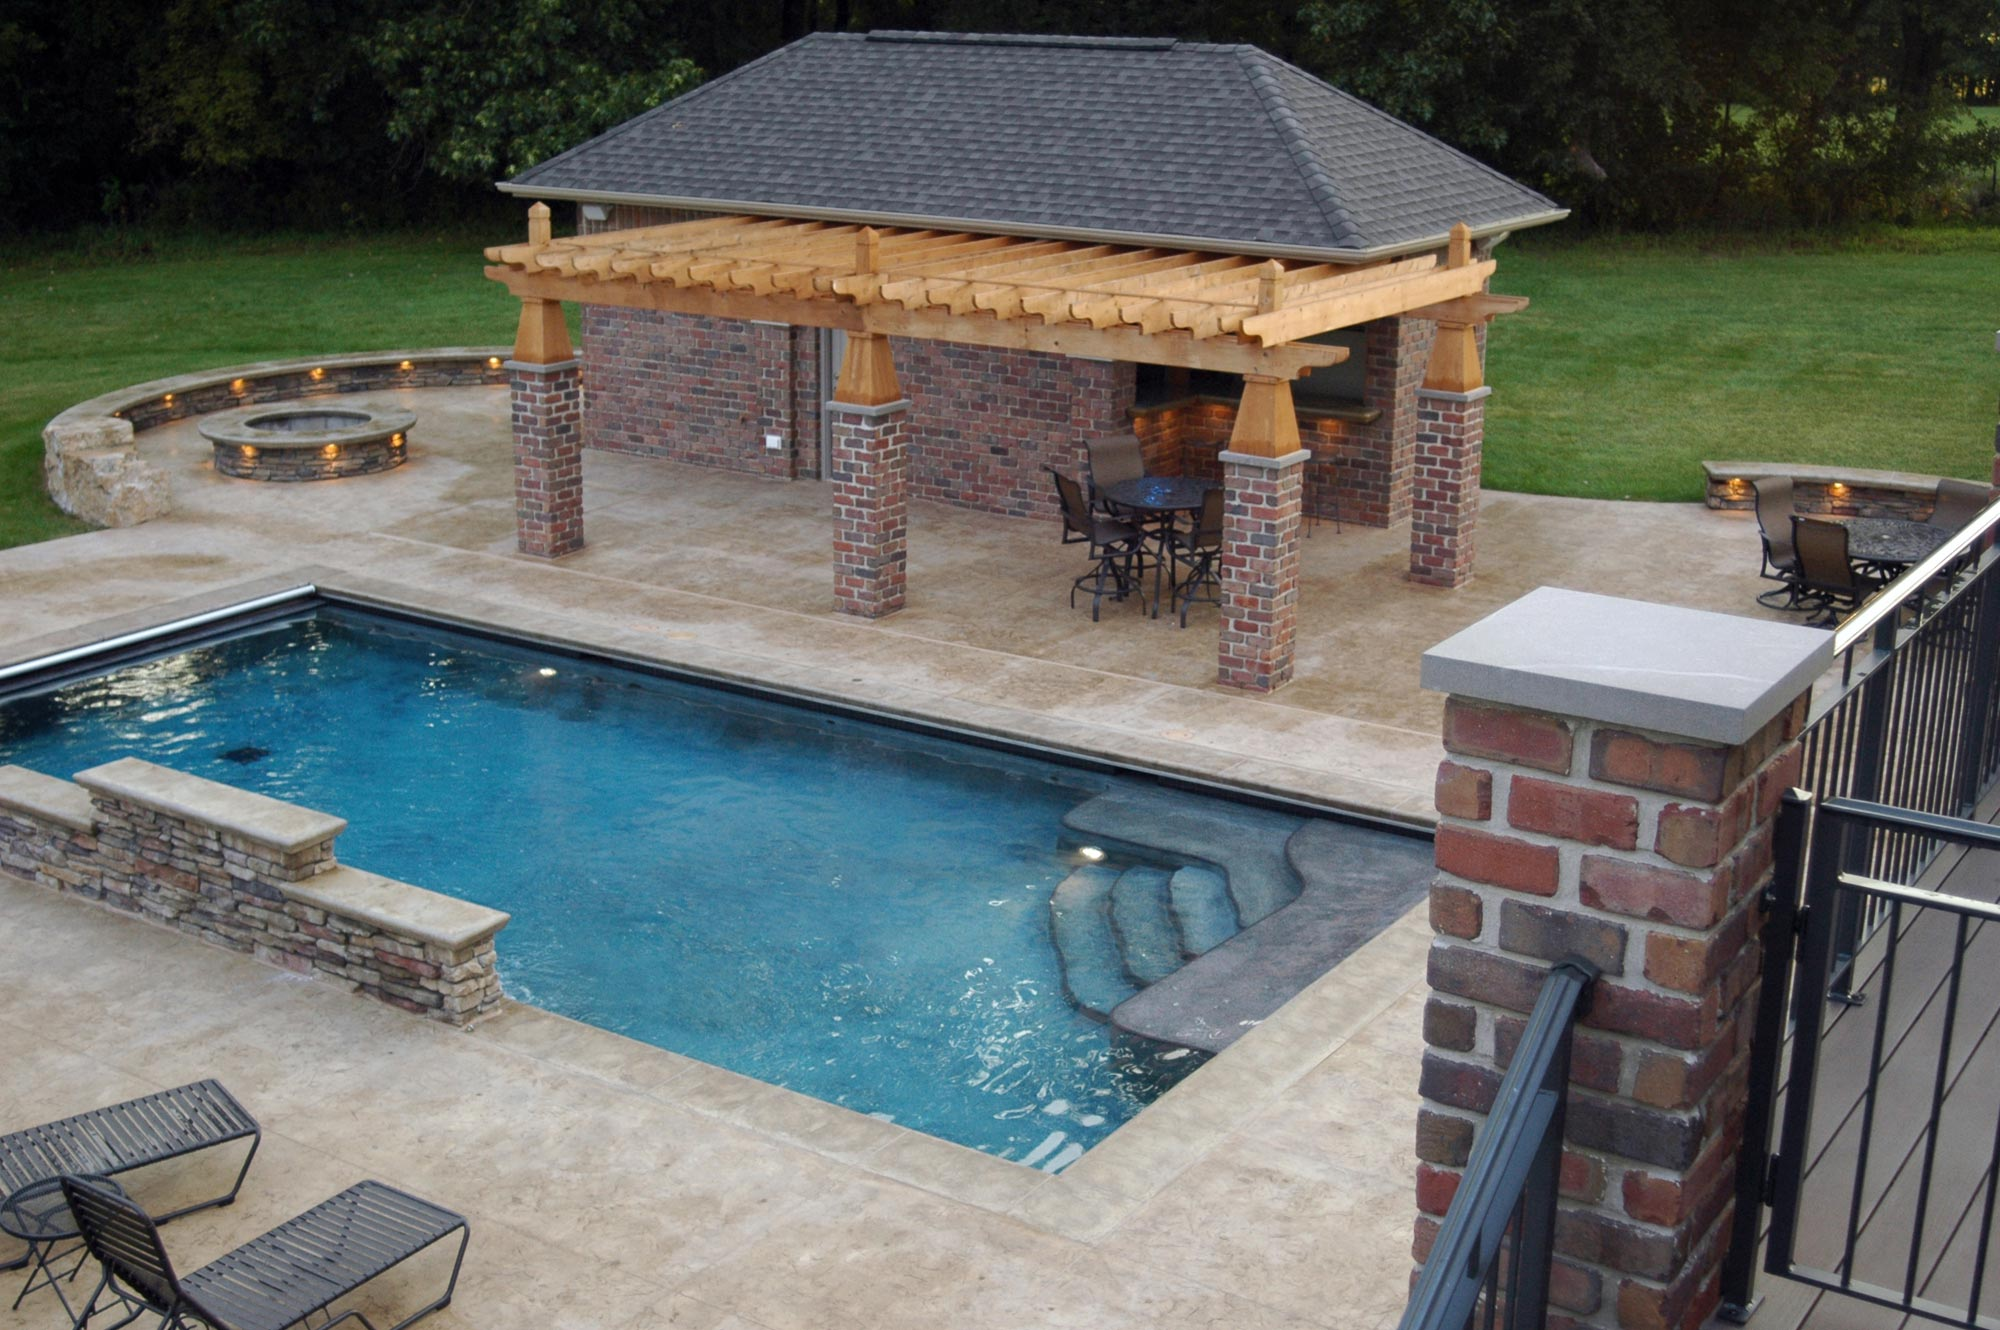 mid west rectangle pool designs with natural floor and pool lounge chairs plus outdoor living area